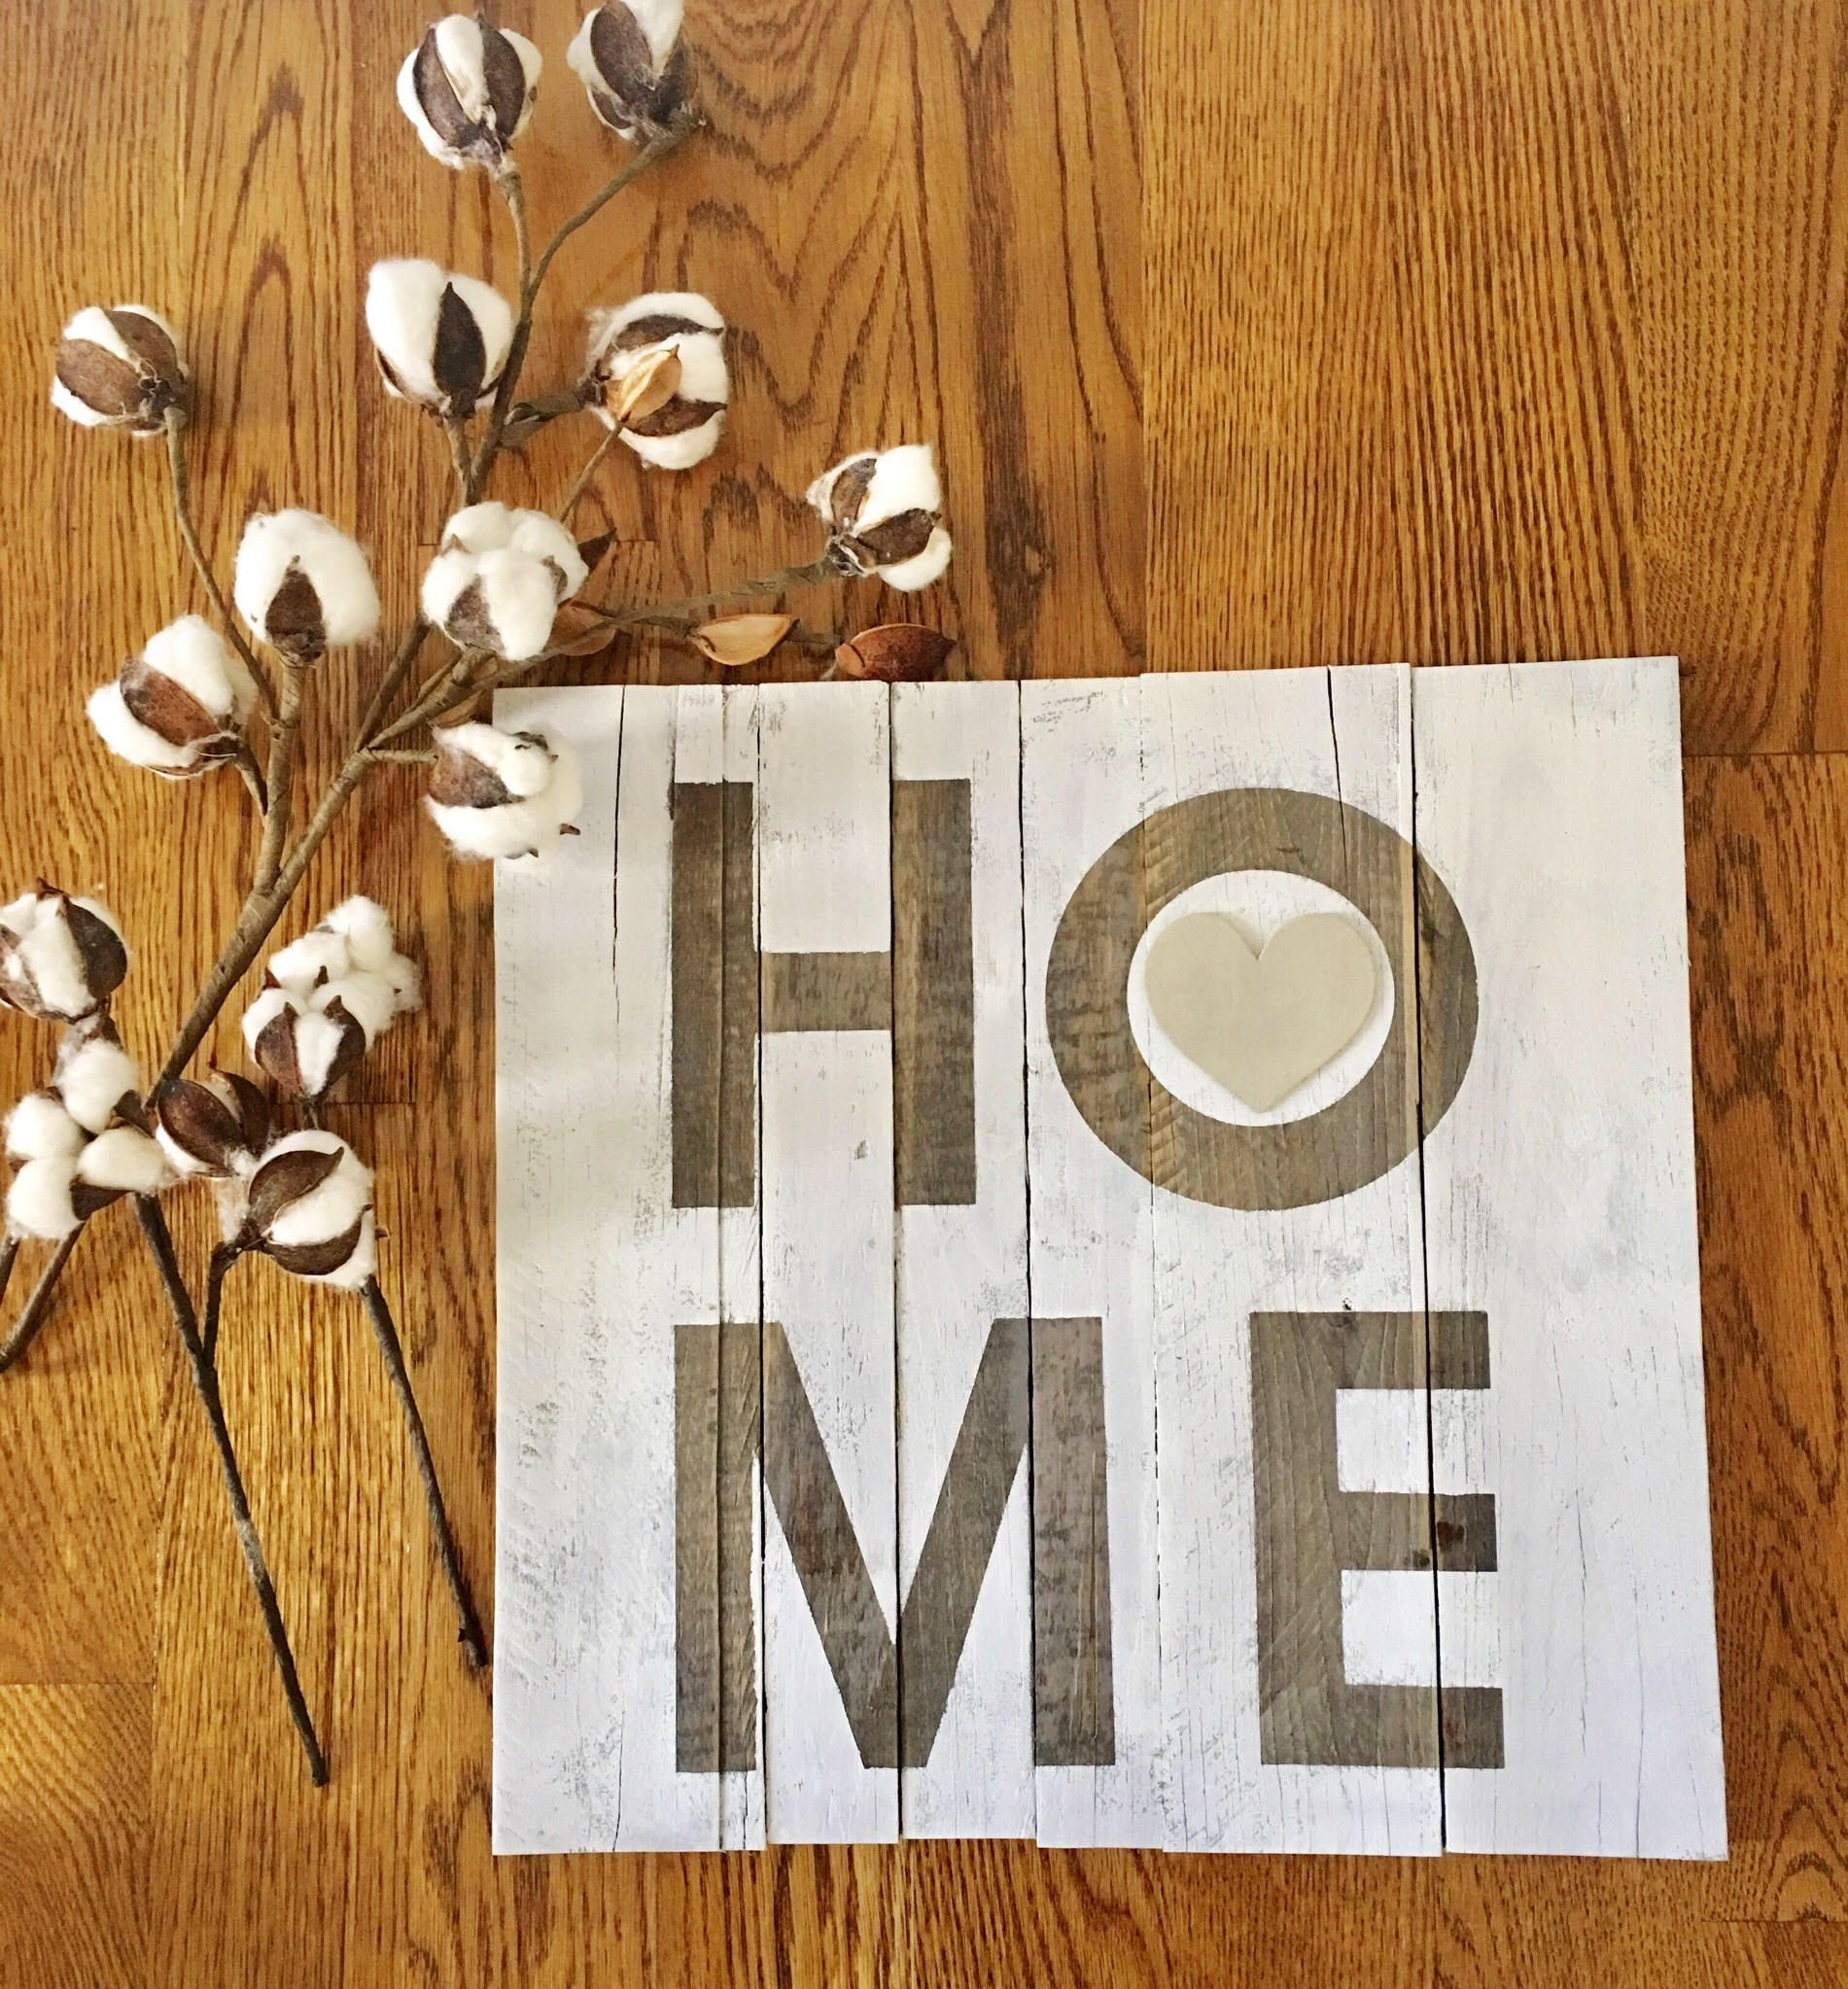 Excited to share the latest addition to my #etsy shop: Home Sign | Wood Sign | Pallet Sign | Rustic Decor | Farmhouse Decor | Farmhouse | Rustic | Wood Signs | 15x15 Sign